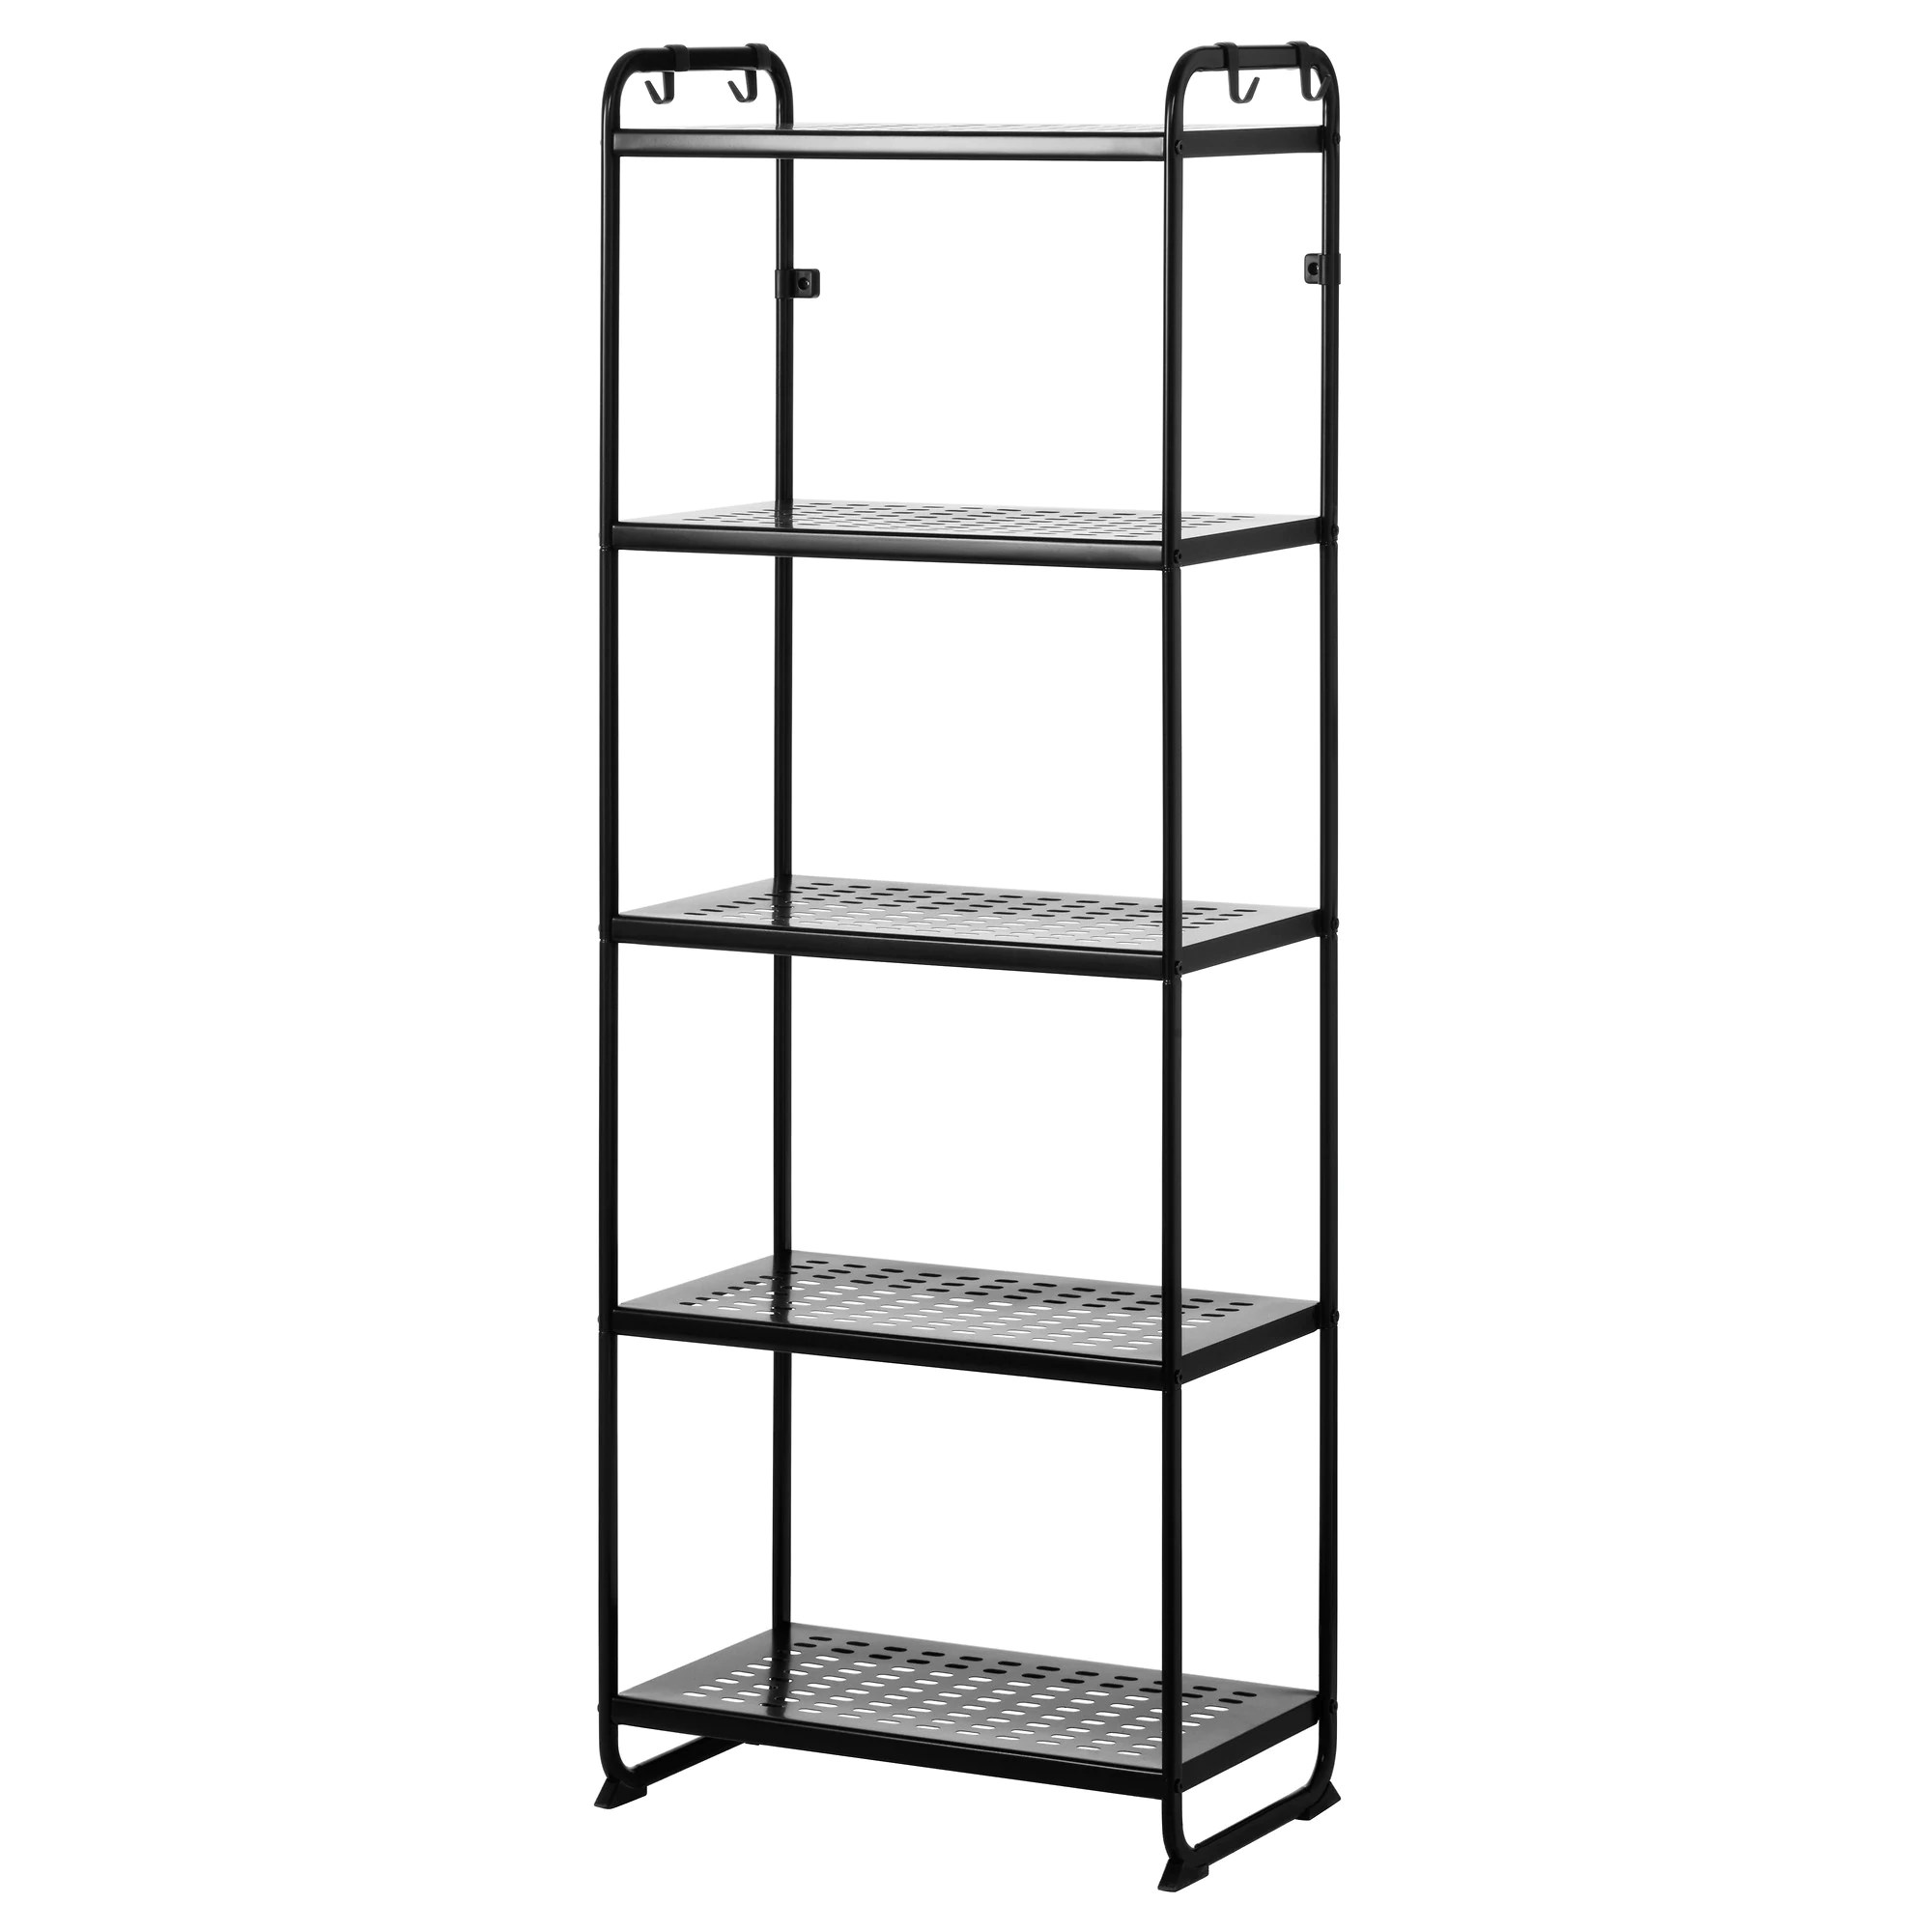 Metal Shelving Mulig Shelf Unit Black